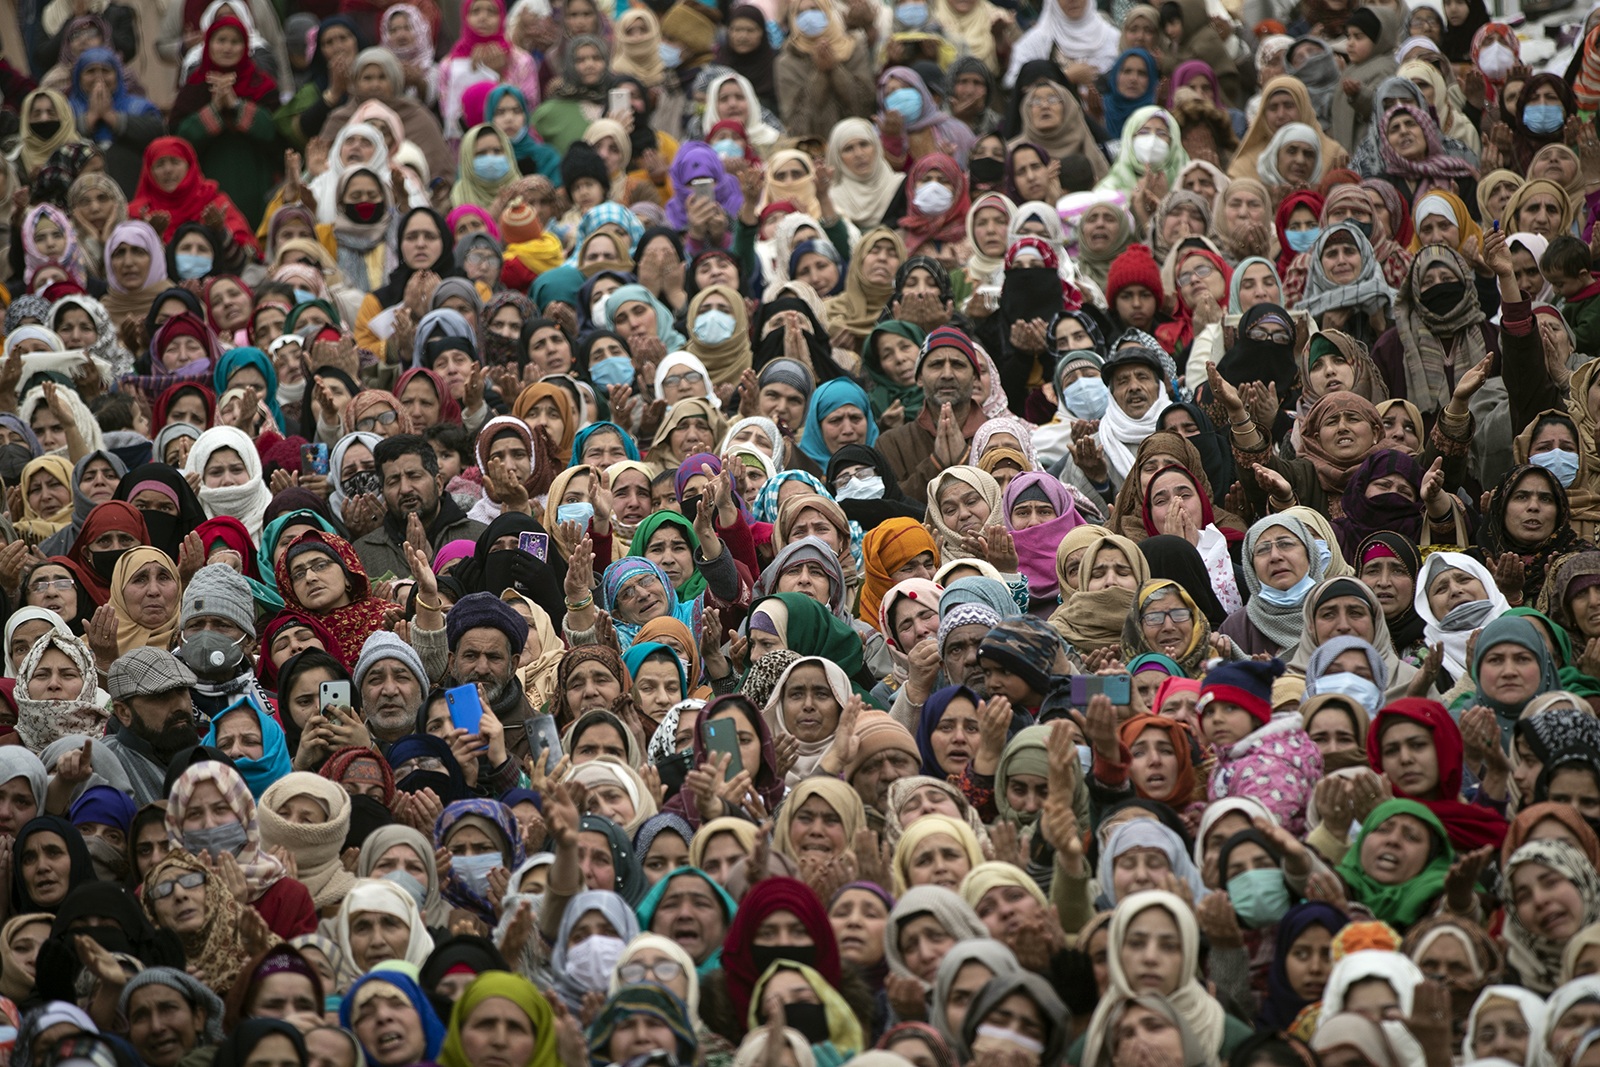 Kashmiri Muslims raise their hands and pray as the head cleric, unseen, displays a relic believed to be a hair from the beard of the Prophet Mohammad, during special prayers on the death anniversary of Abu Bakr Siddiq, the first Caliph of Islam, at Hazratbal Shrine in Srinagar, Indian controlled Kashmir, Friday, Feb. 5, 2021. (AP Photo/Mukhtar Khan)